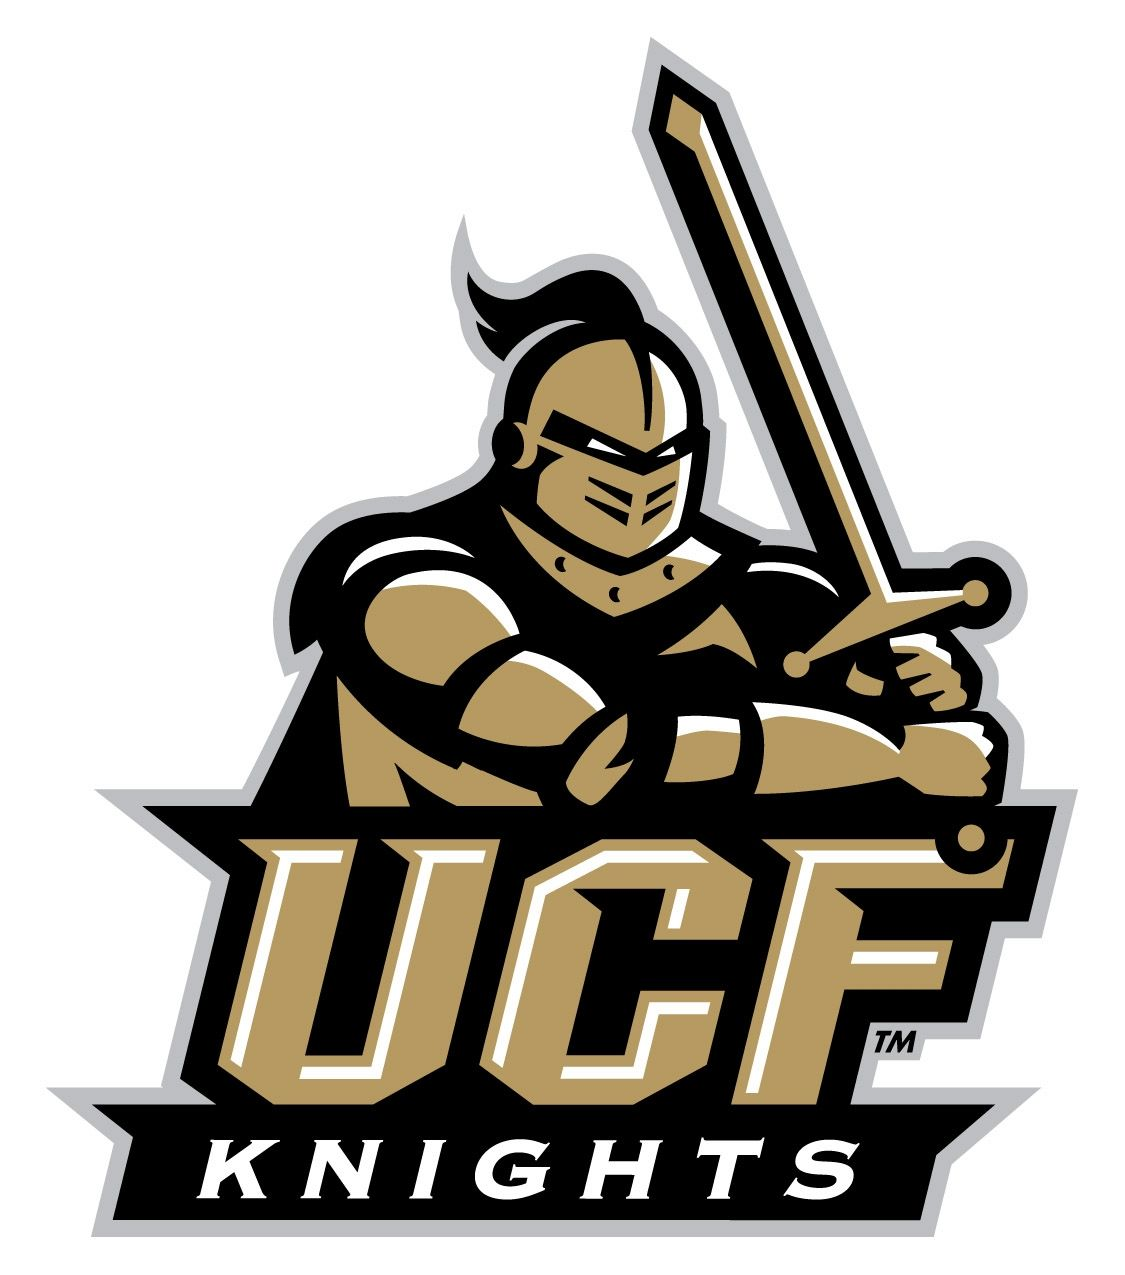 university of central florida knights logo florida  university of central florida knights logo 1